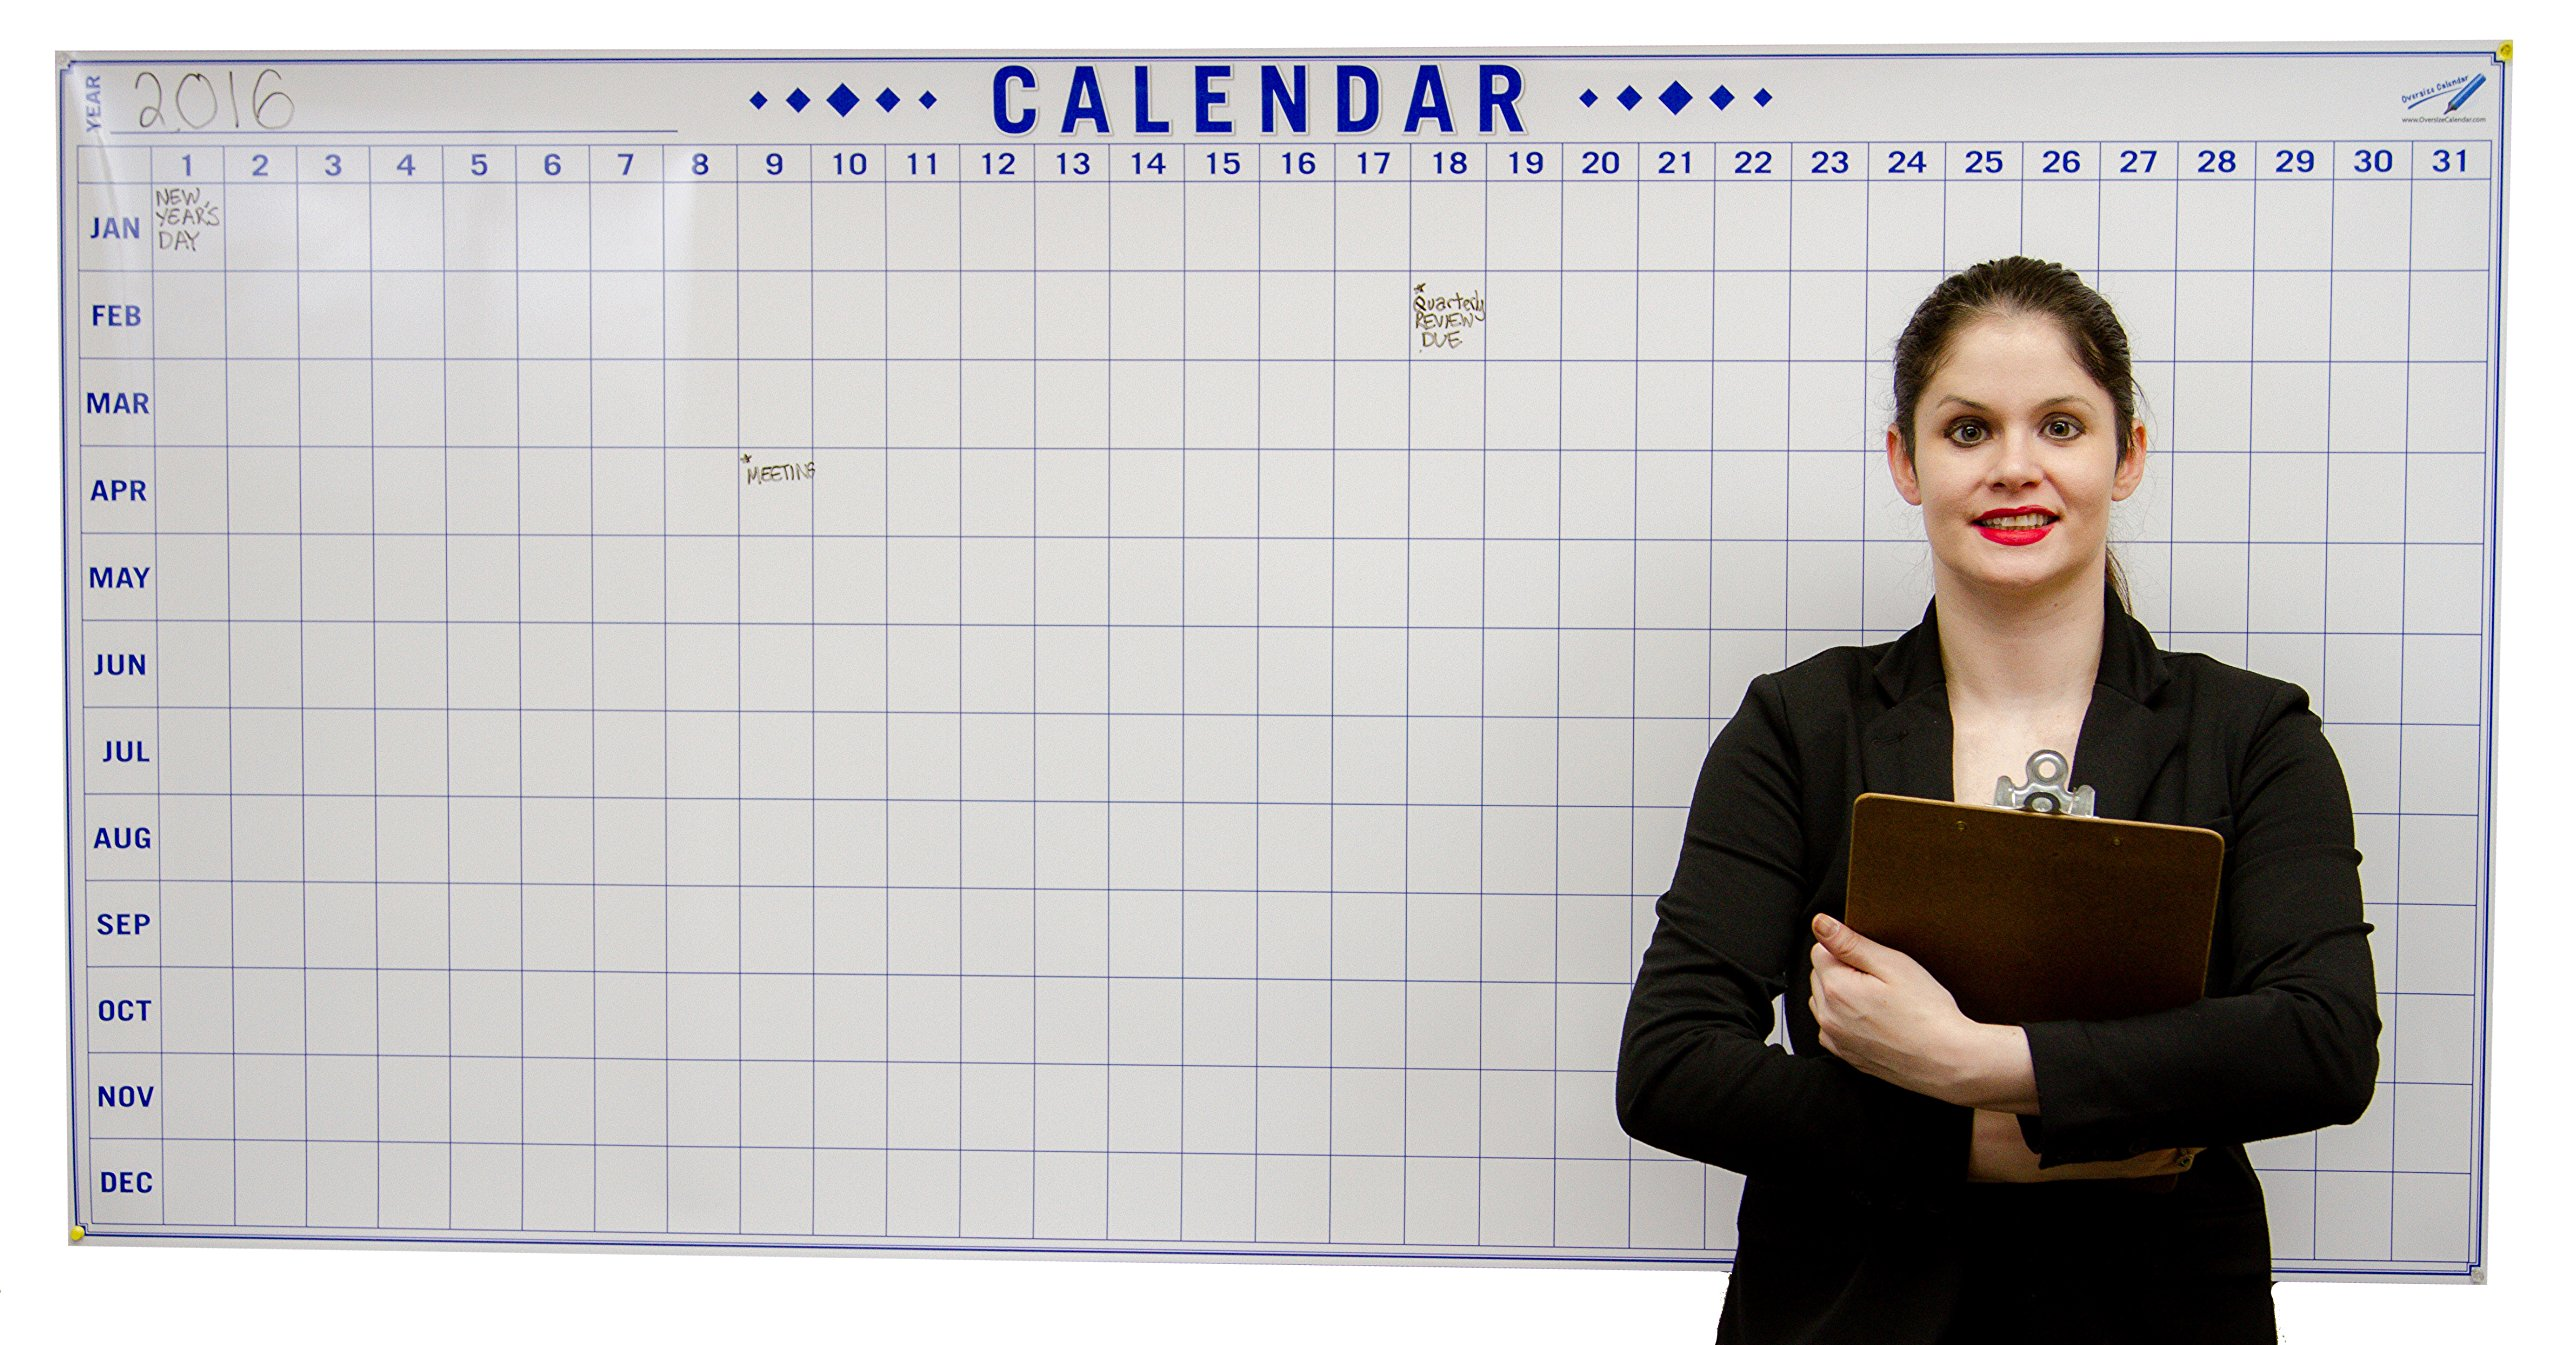 Dry Erase Julian Date Calendar - 36 x 72 Large Dry Erase Wall Calendar - Large Wall Calendar - Reusable Annual Calendar - Wall Planner with Vertical Dates and Horizontal Months by Oversize Planner by ABI Digital Solutions (Image #1)